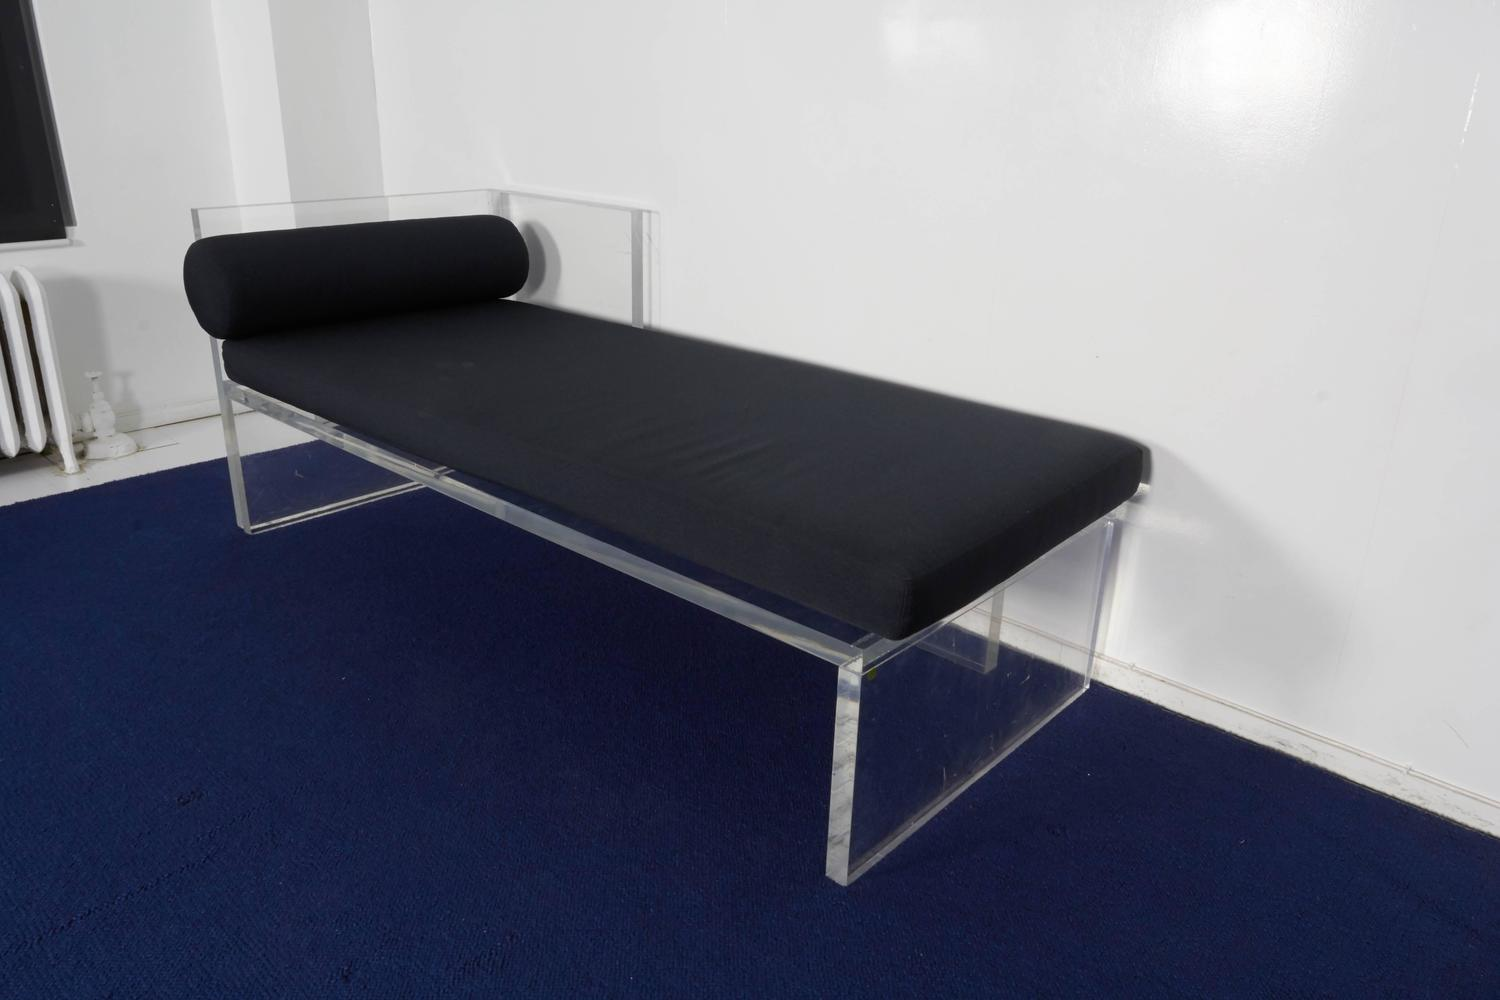 Lucite chaise longue for sale at 1stdibs for Chaise longue for sale